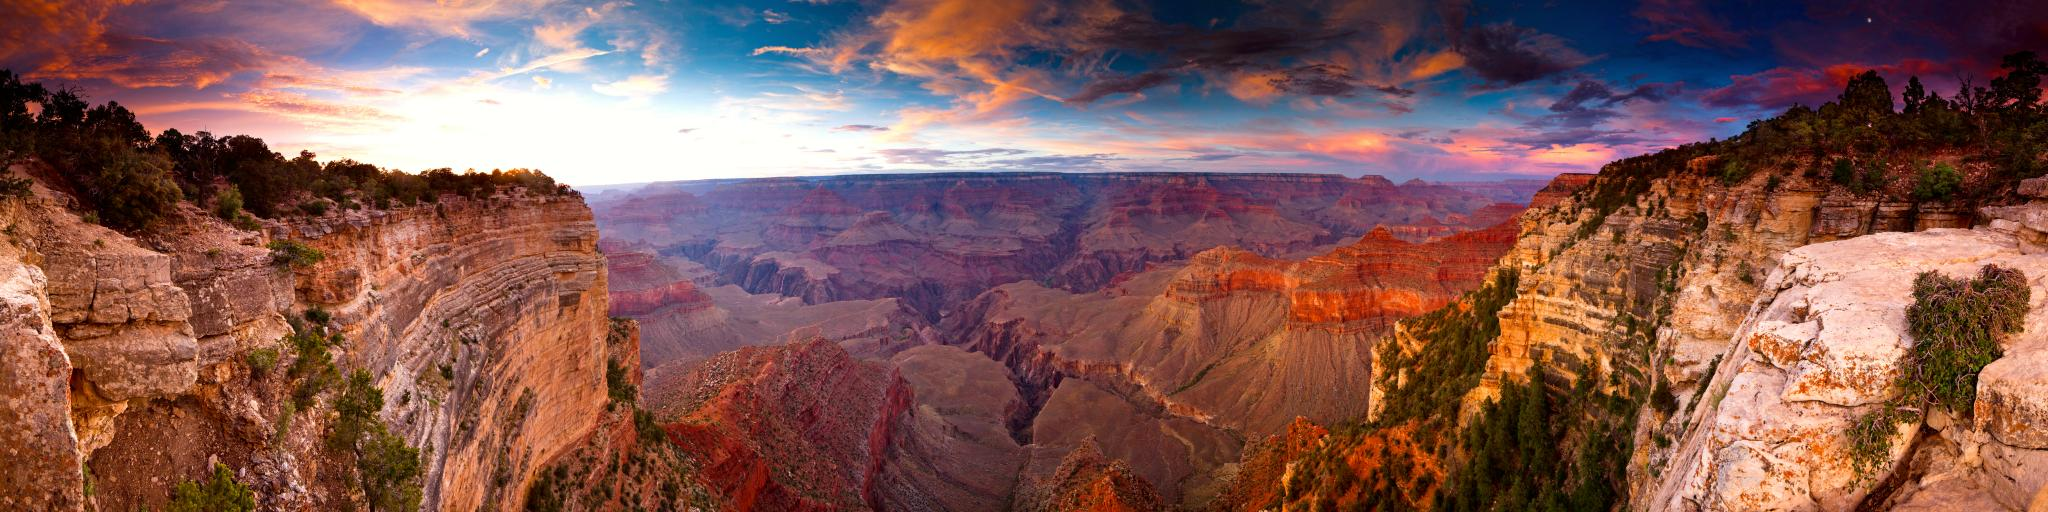 A fantastic view of the sunset reflecting the walls of Grand Canyon with a beautiful hue of pink and purple clouds in the blue sky